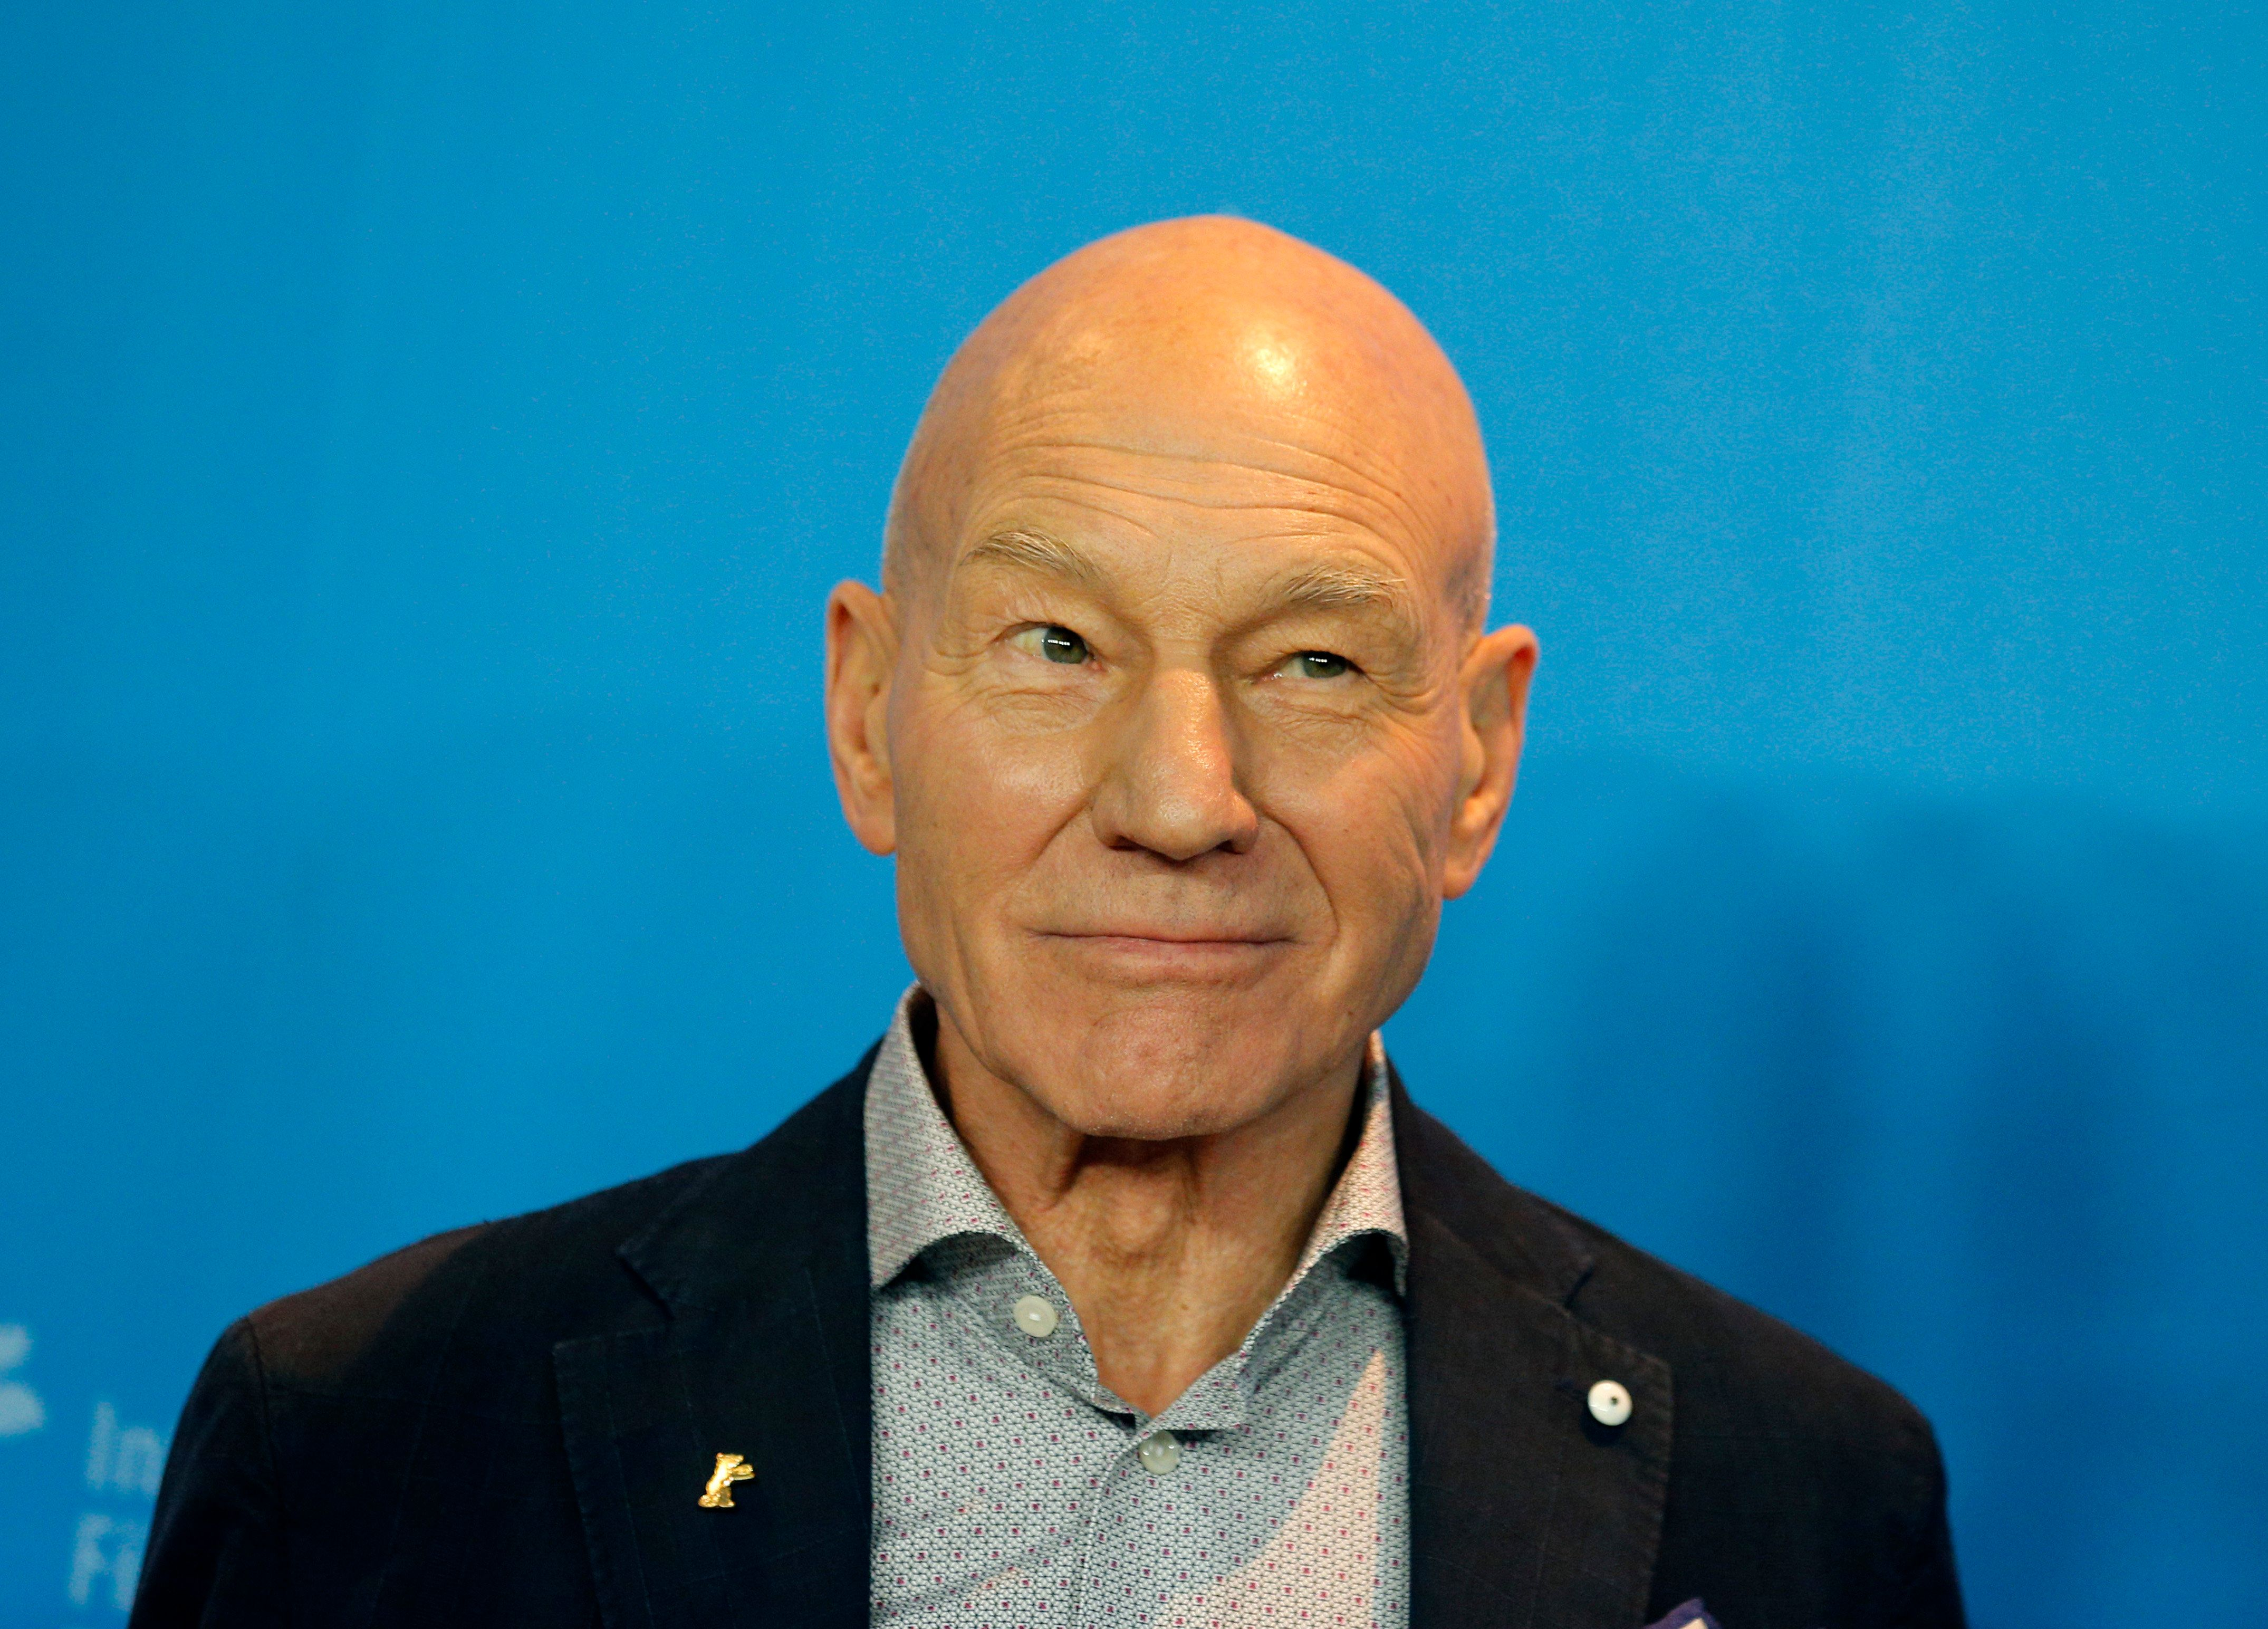 Photo Of Patrick Stewart Picking Apples Sends People Into